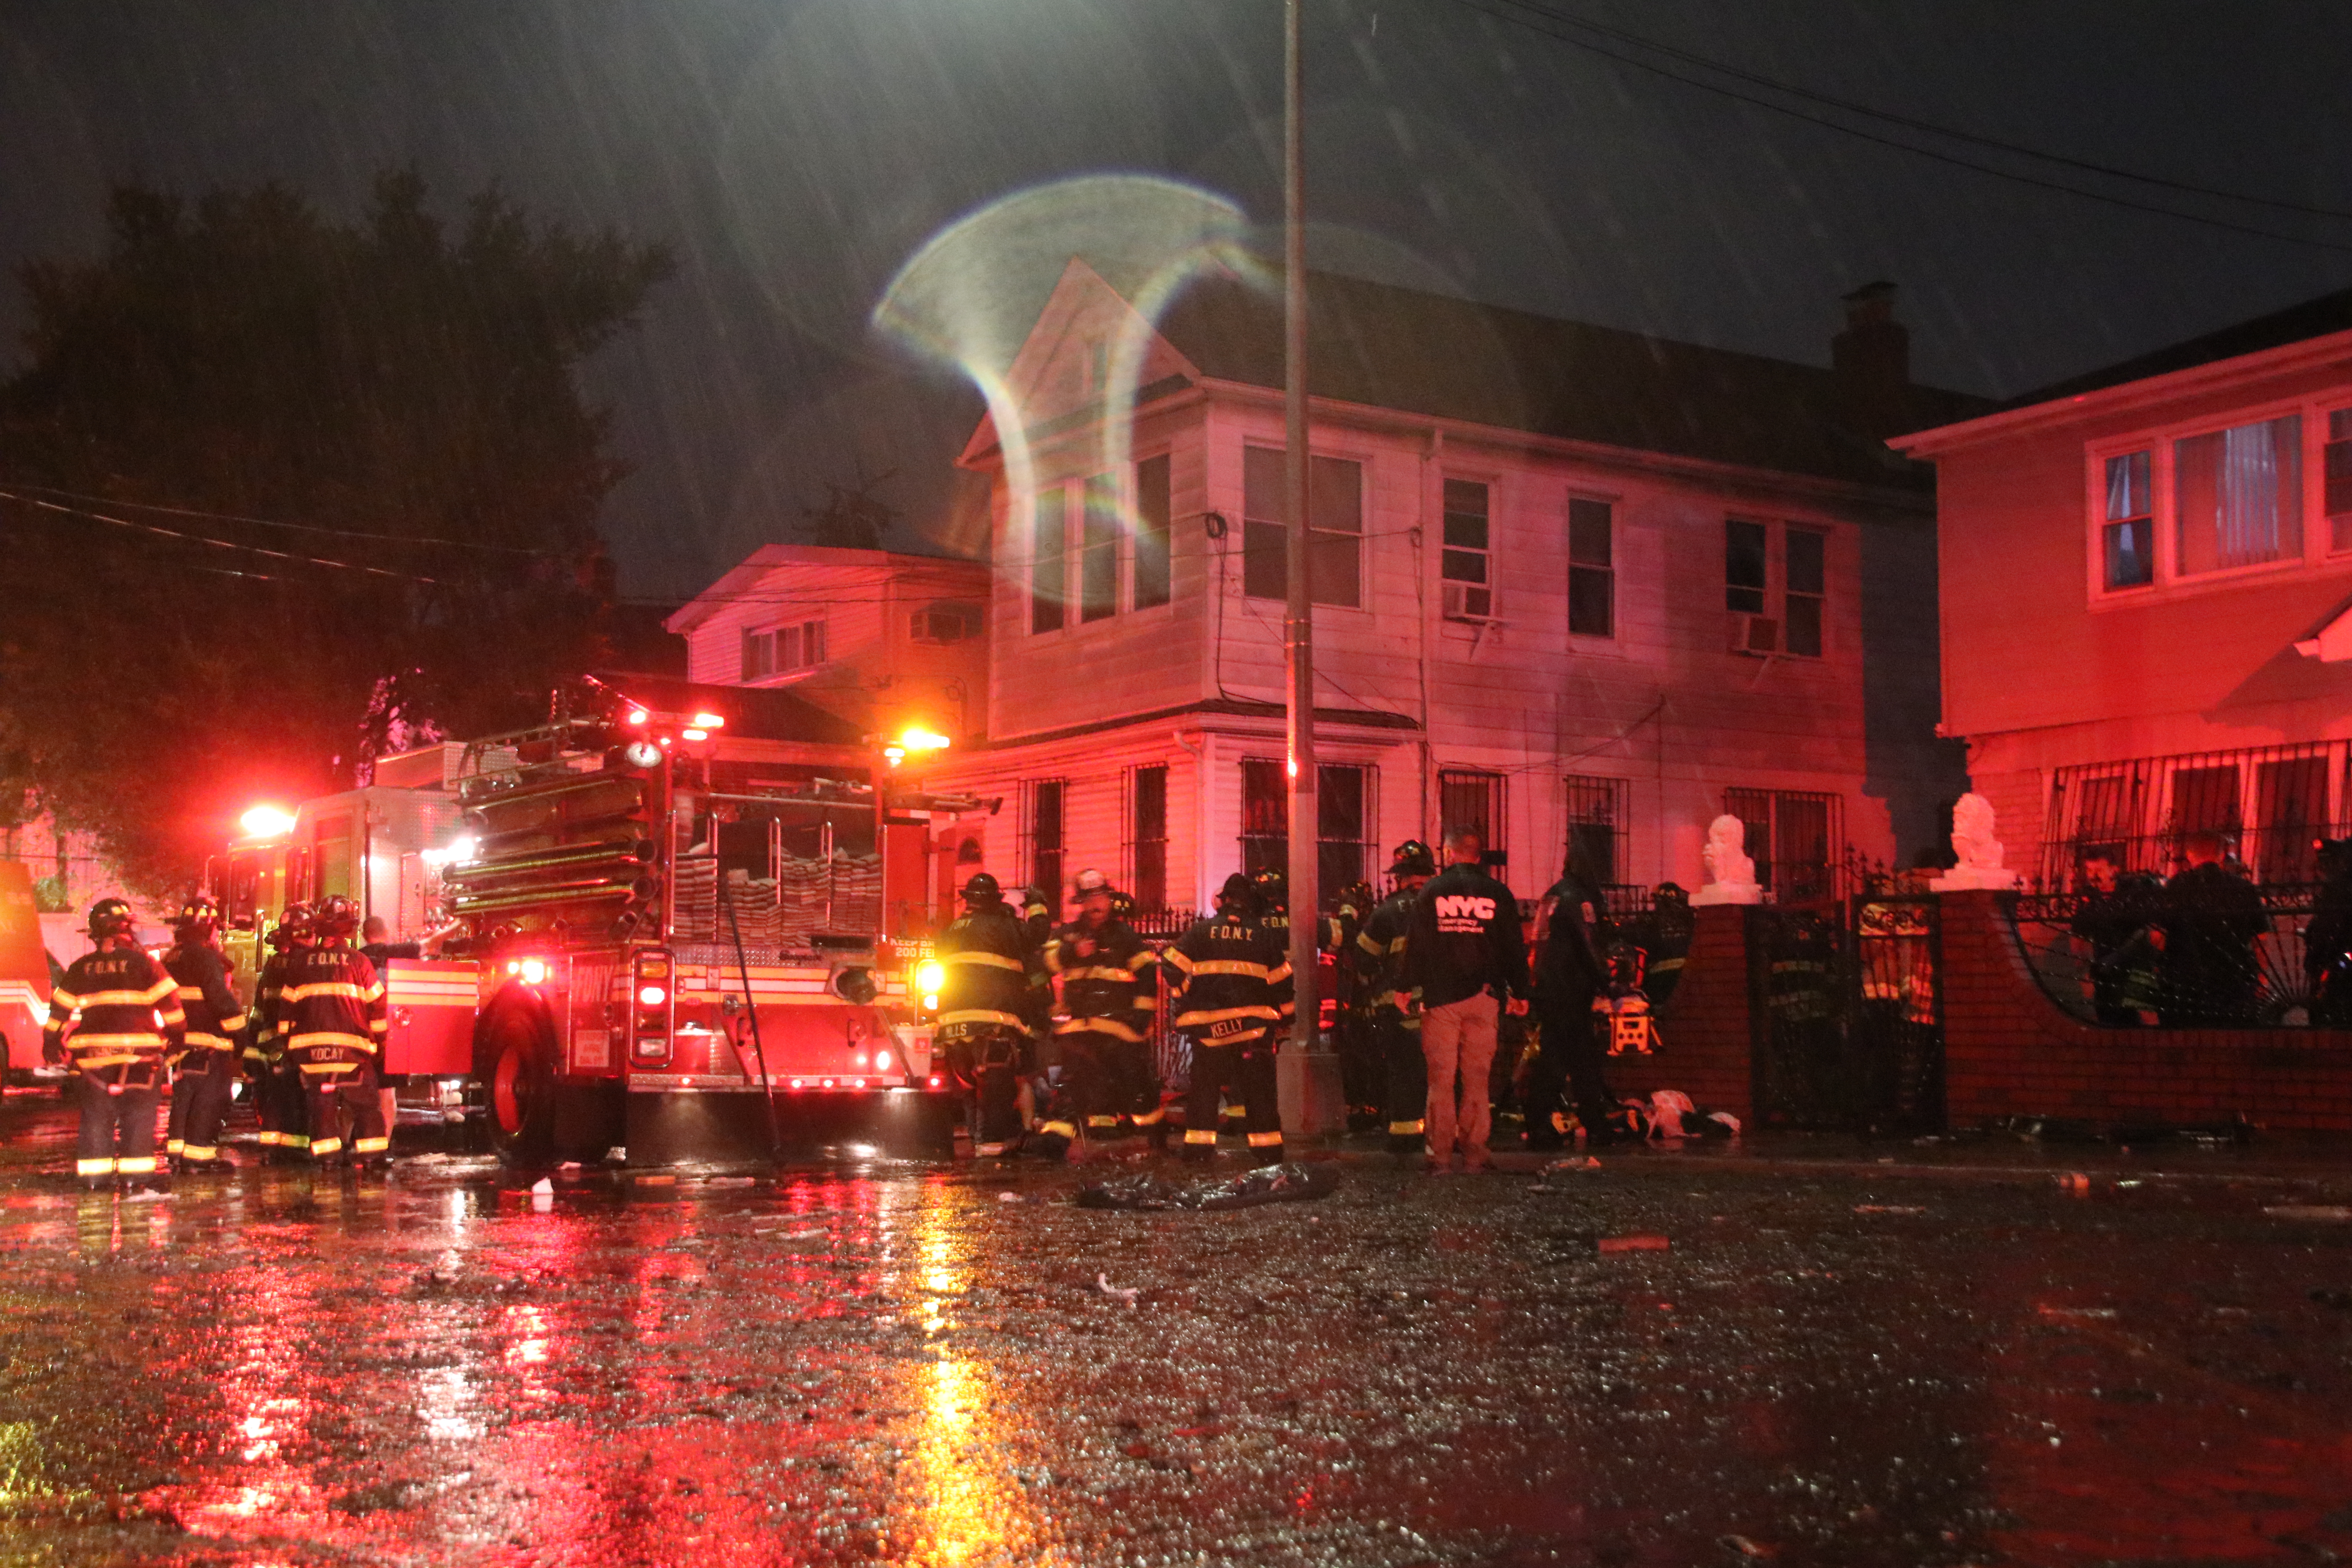 Fire Department members stand outside a white house in queens in the rain